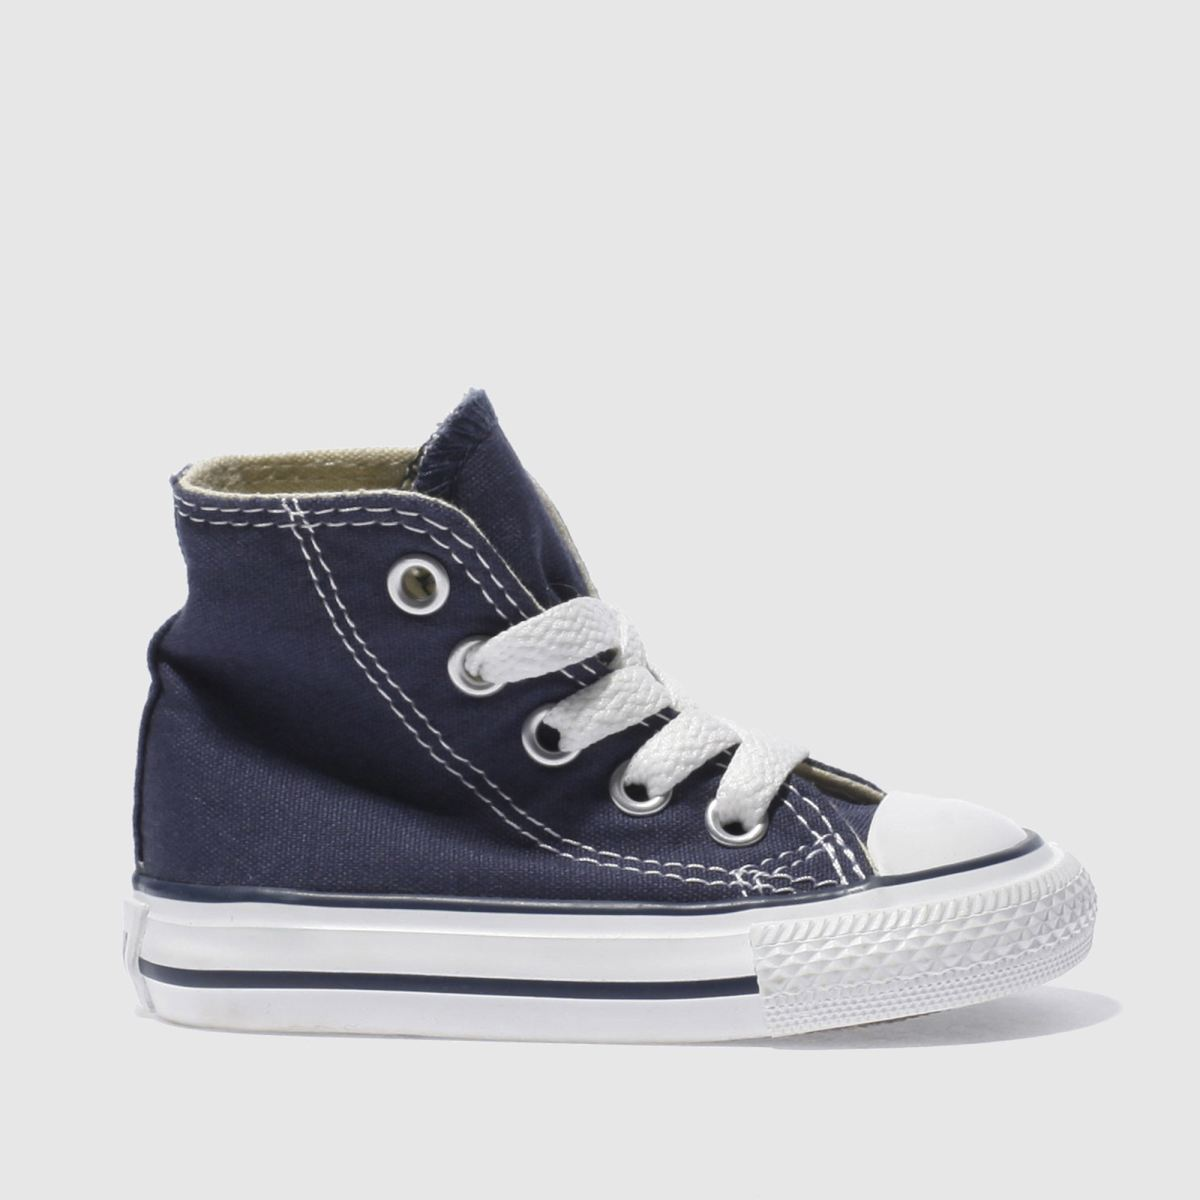 converse navy all star hi Boys Toddler Trainers